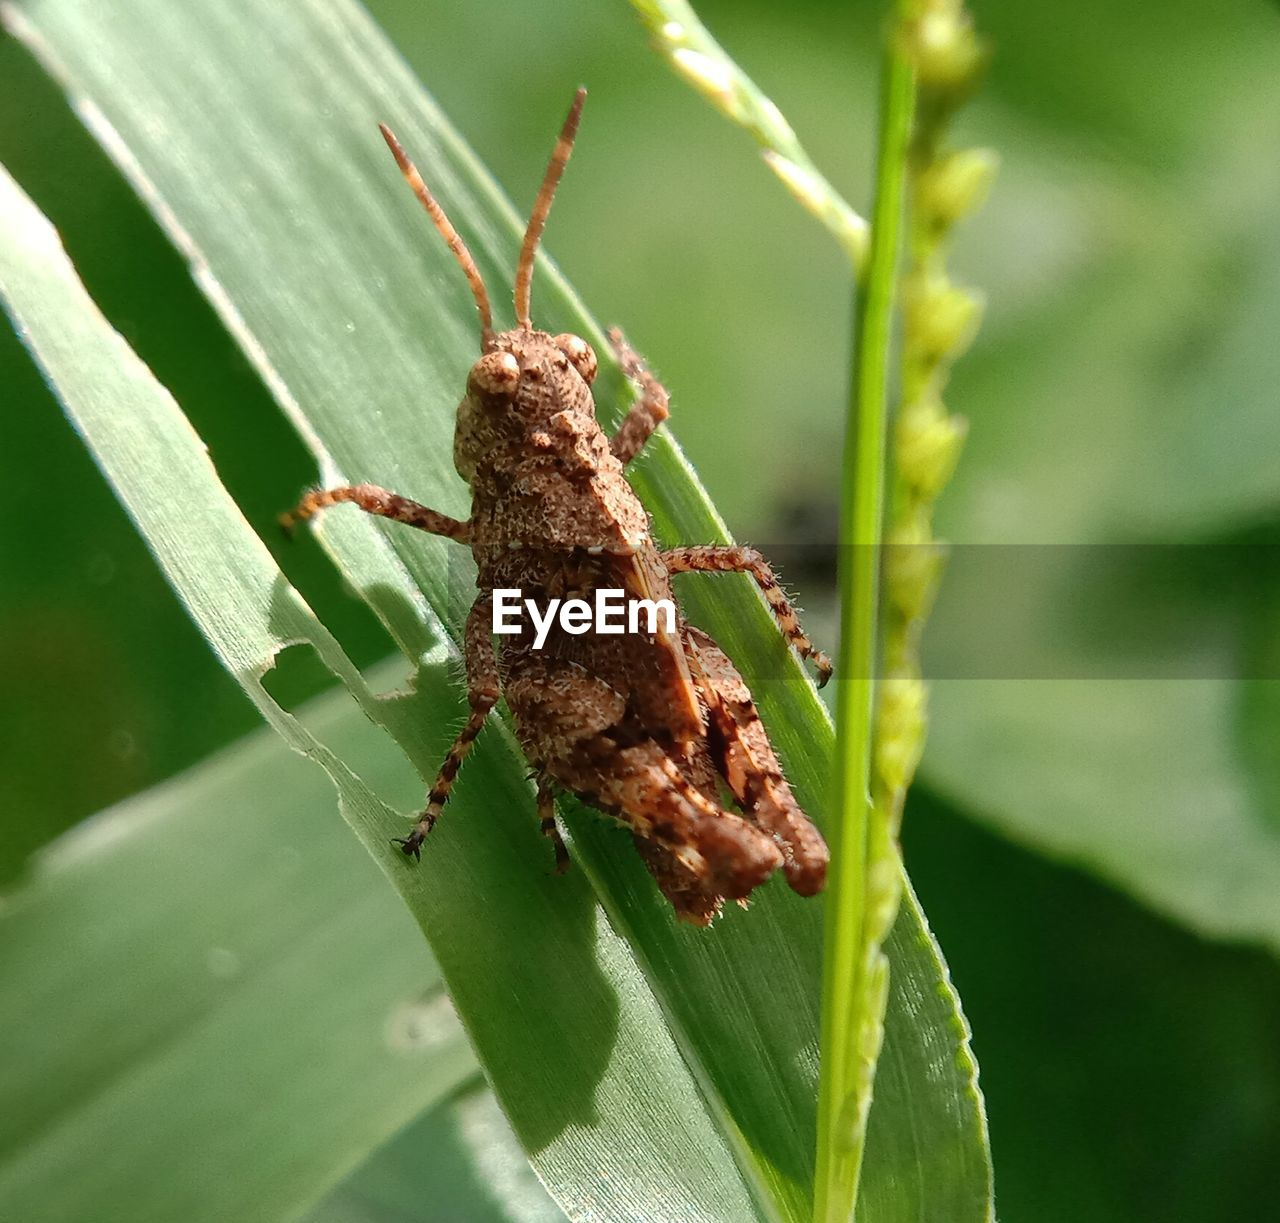 insect, invertebrate, animals in the wild, animal wildlife, close-up, green color, animal, animal themes, plant part, leaf, one animal, nature, day, focus on foreground, plant, no people, growth, selective focus, outdoors, sunlight